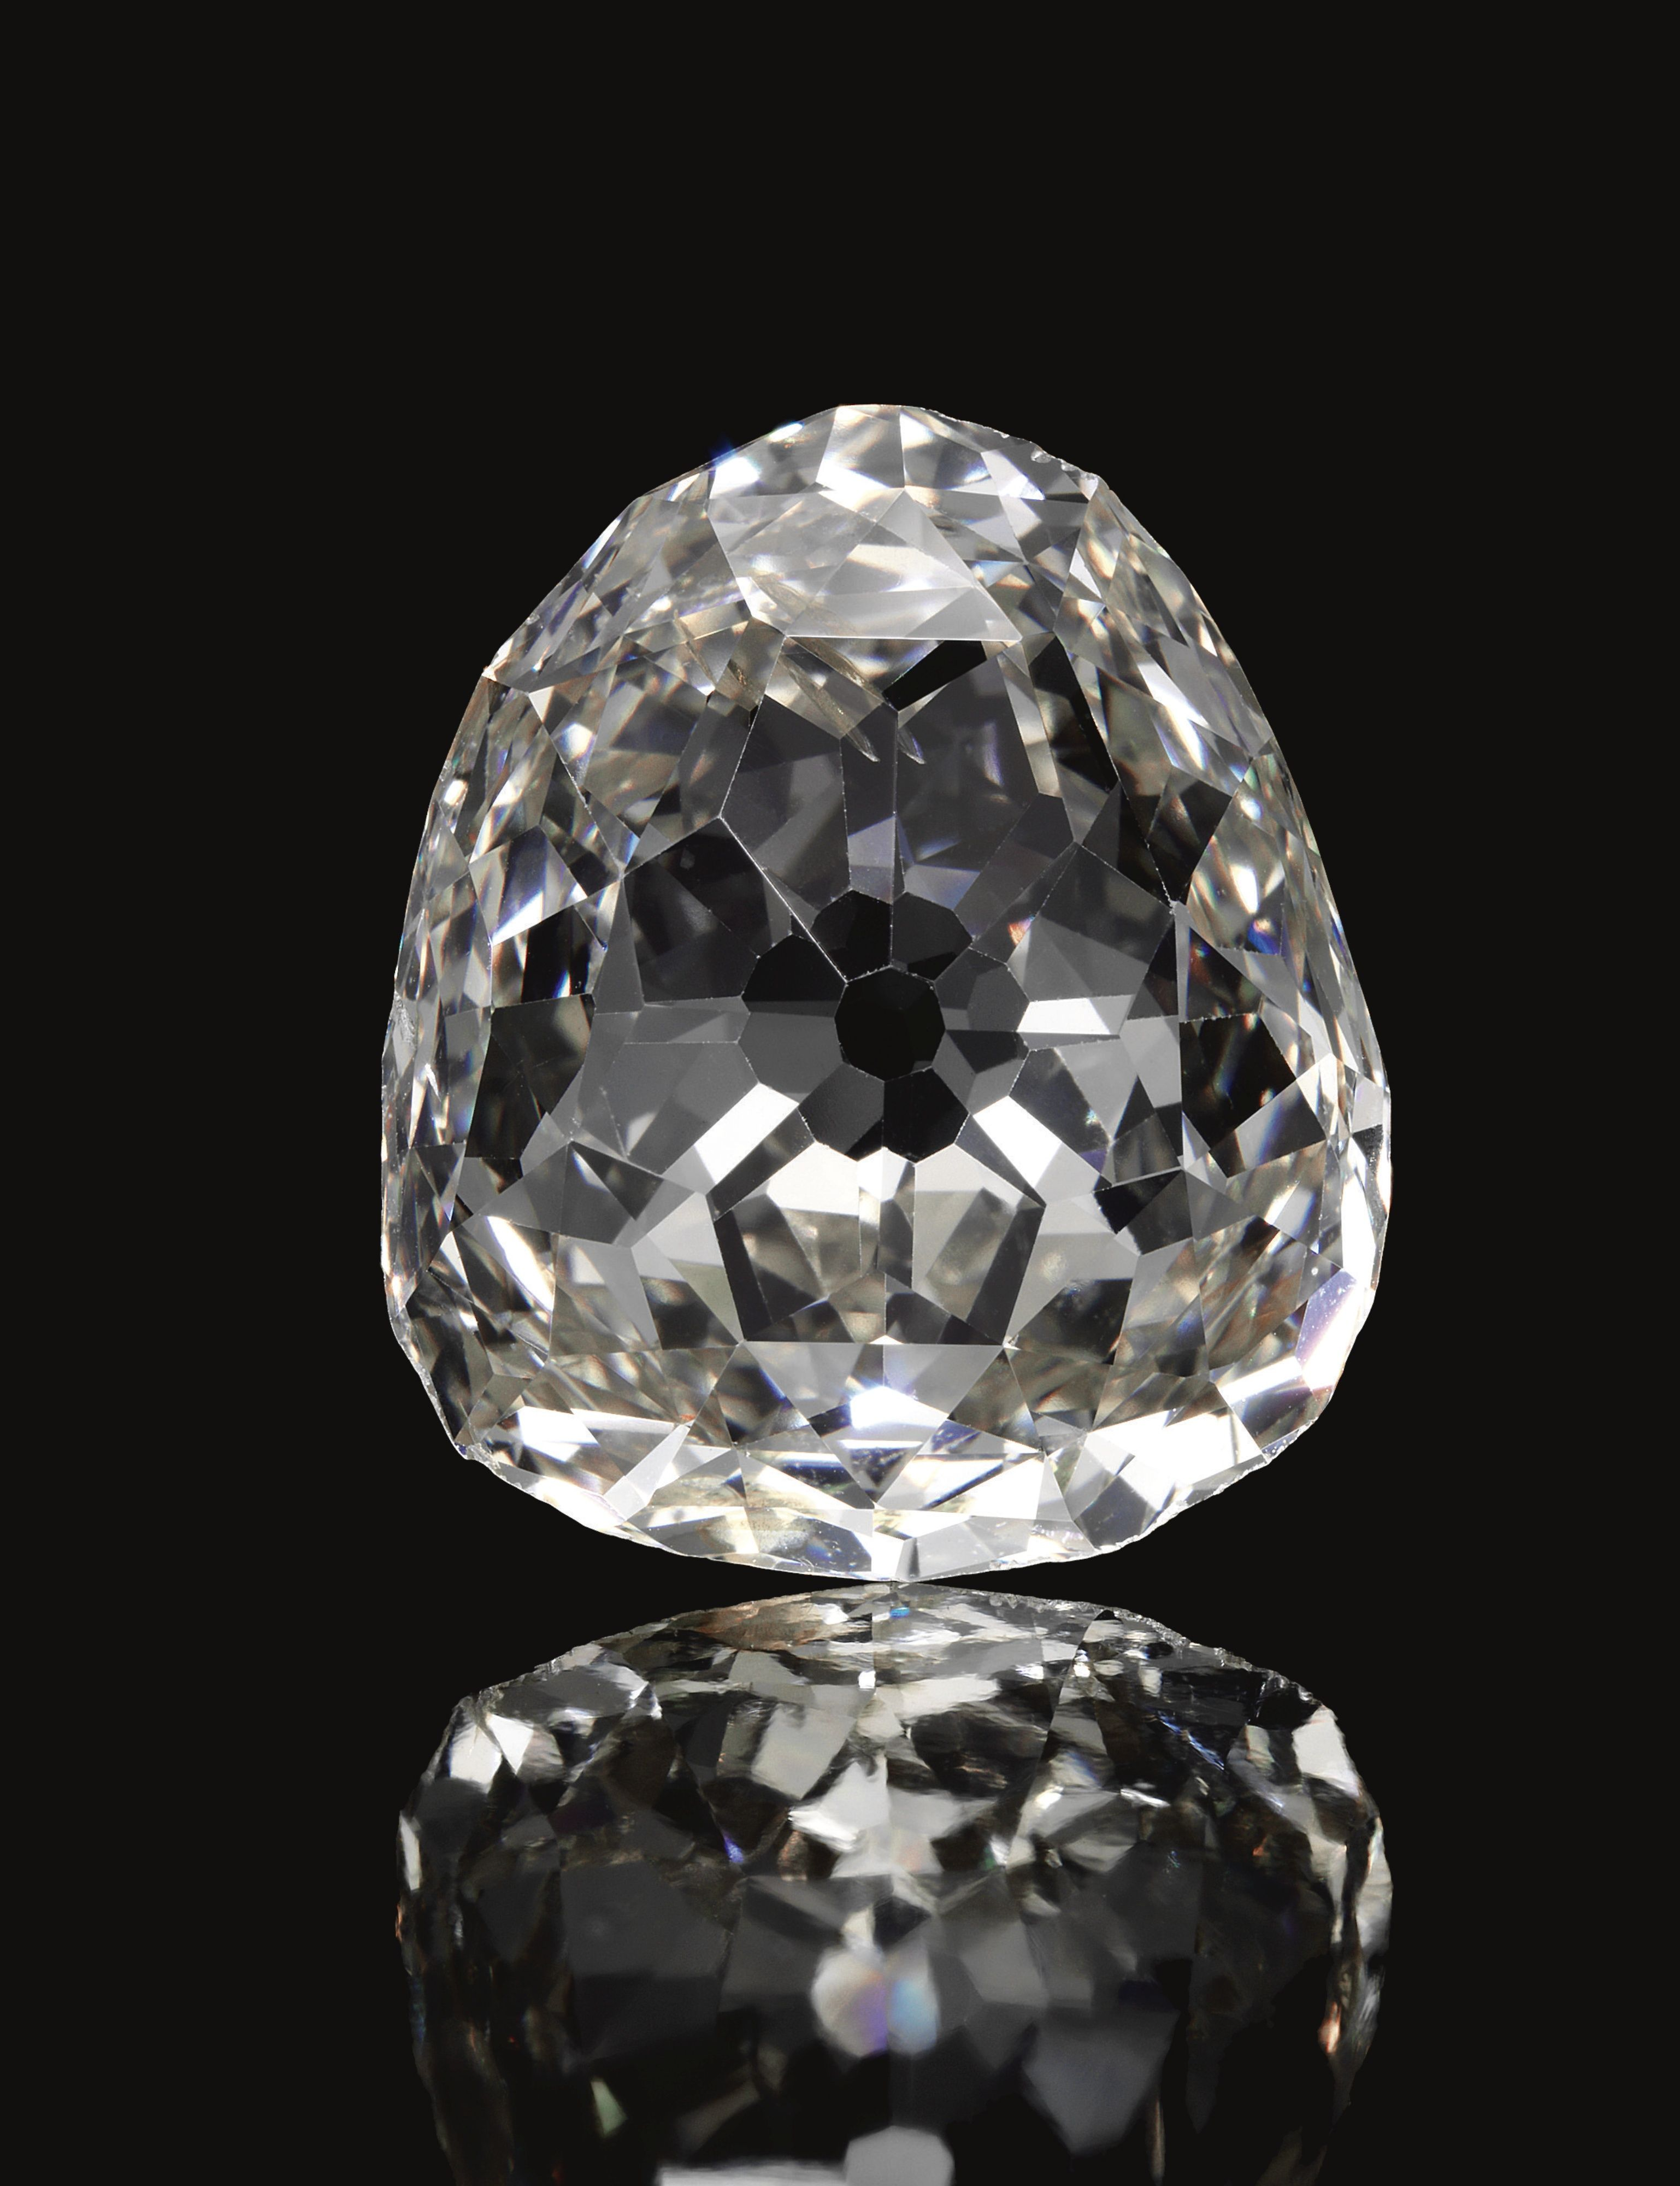 PROPERTY OF THE ROYAL HOUSE OF PRUSSIA: The Beau Sancy Diamond, a modified 34.98 carat pear double rose-cut diamond. Provenance: Queen Marie de Medicis of France; Prince Frederick Henry of Orange, Count of Nassau; Mary Stuart, Princess Royal, daughter of Charles I and Queen Henrietta Maria of England; Queen Mary II of England, daughter of James II; Frederick III, Elector Prince of Brandenburg, later Frederick I of Prussia; thence by descent.